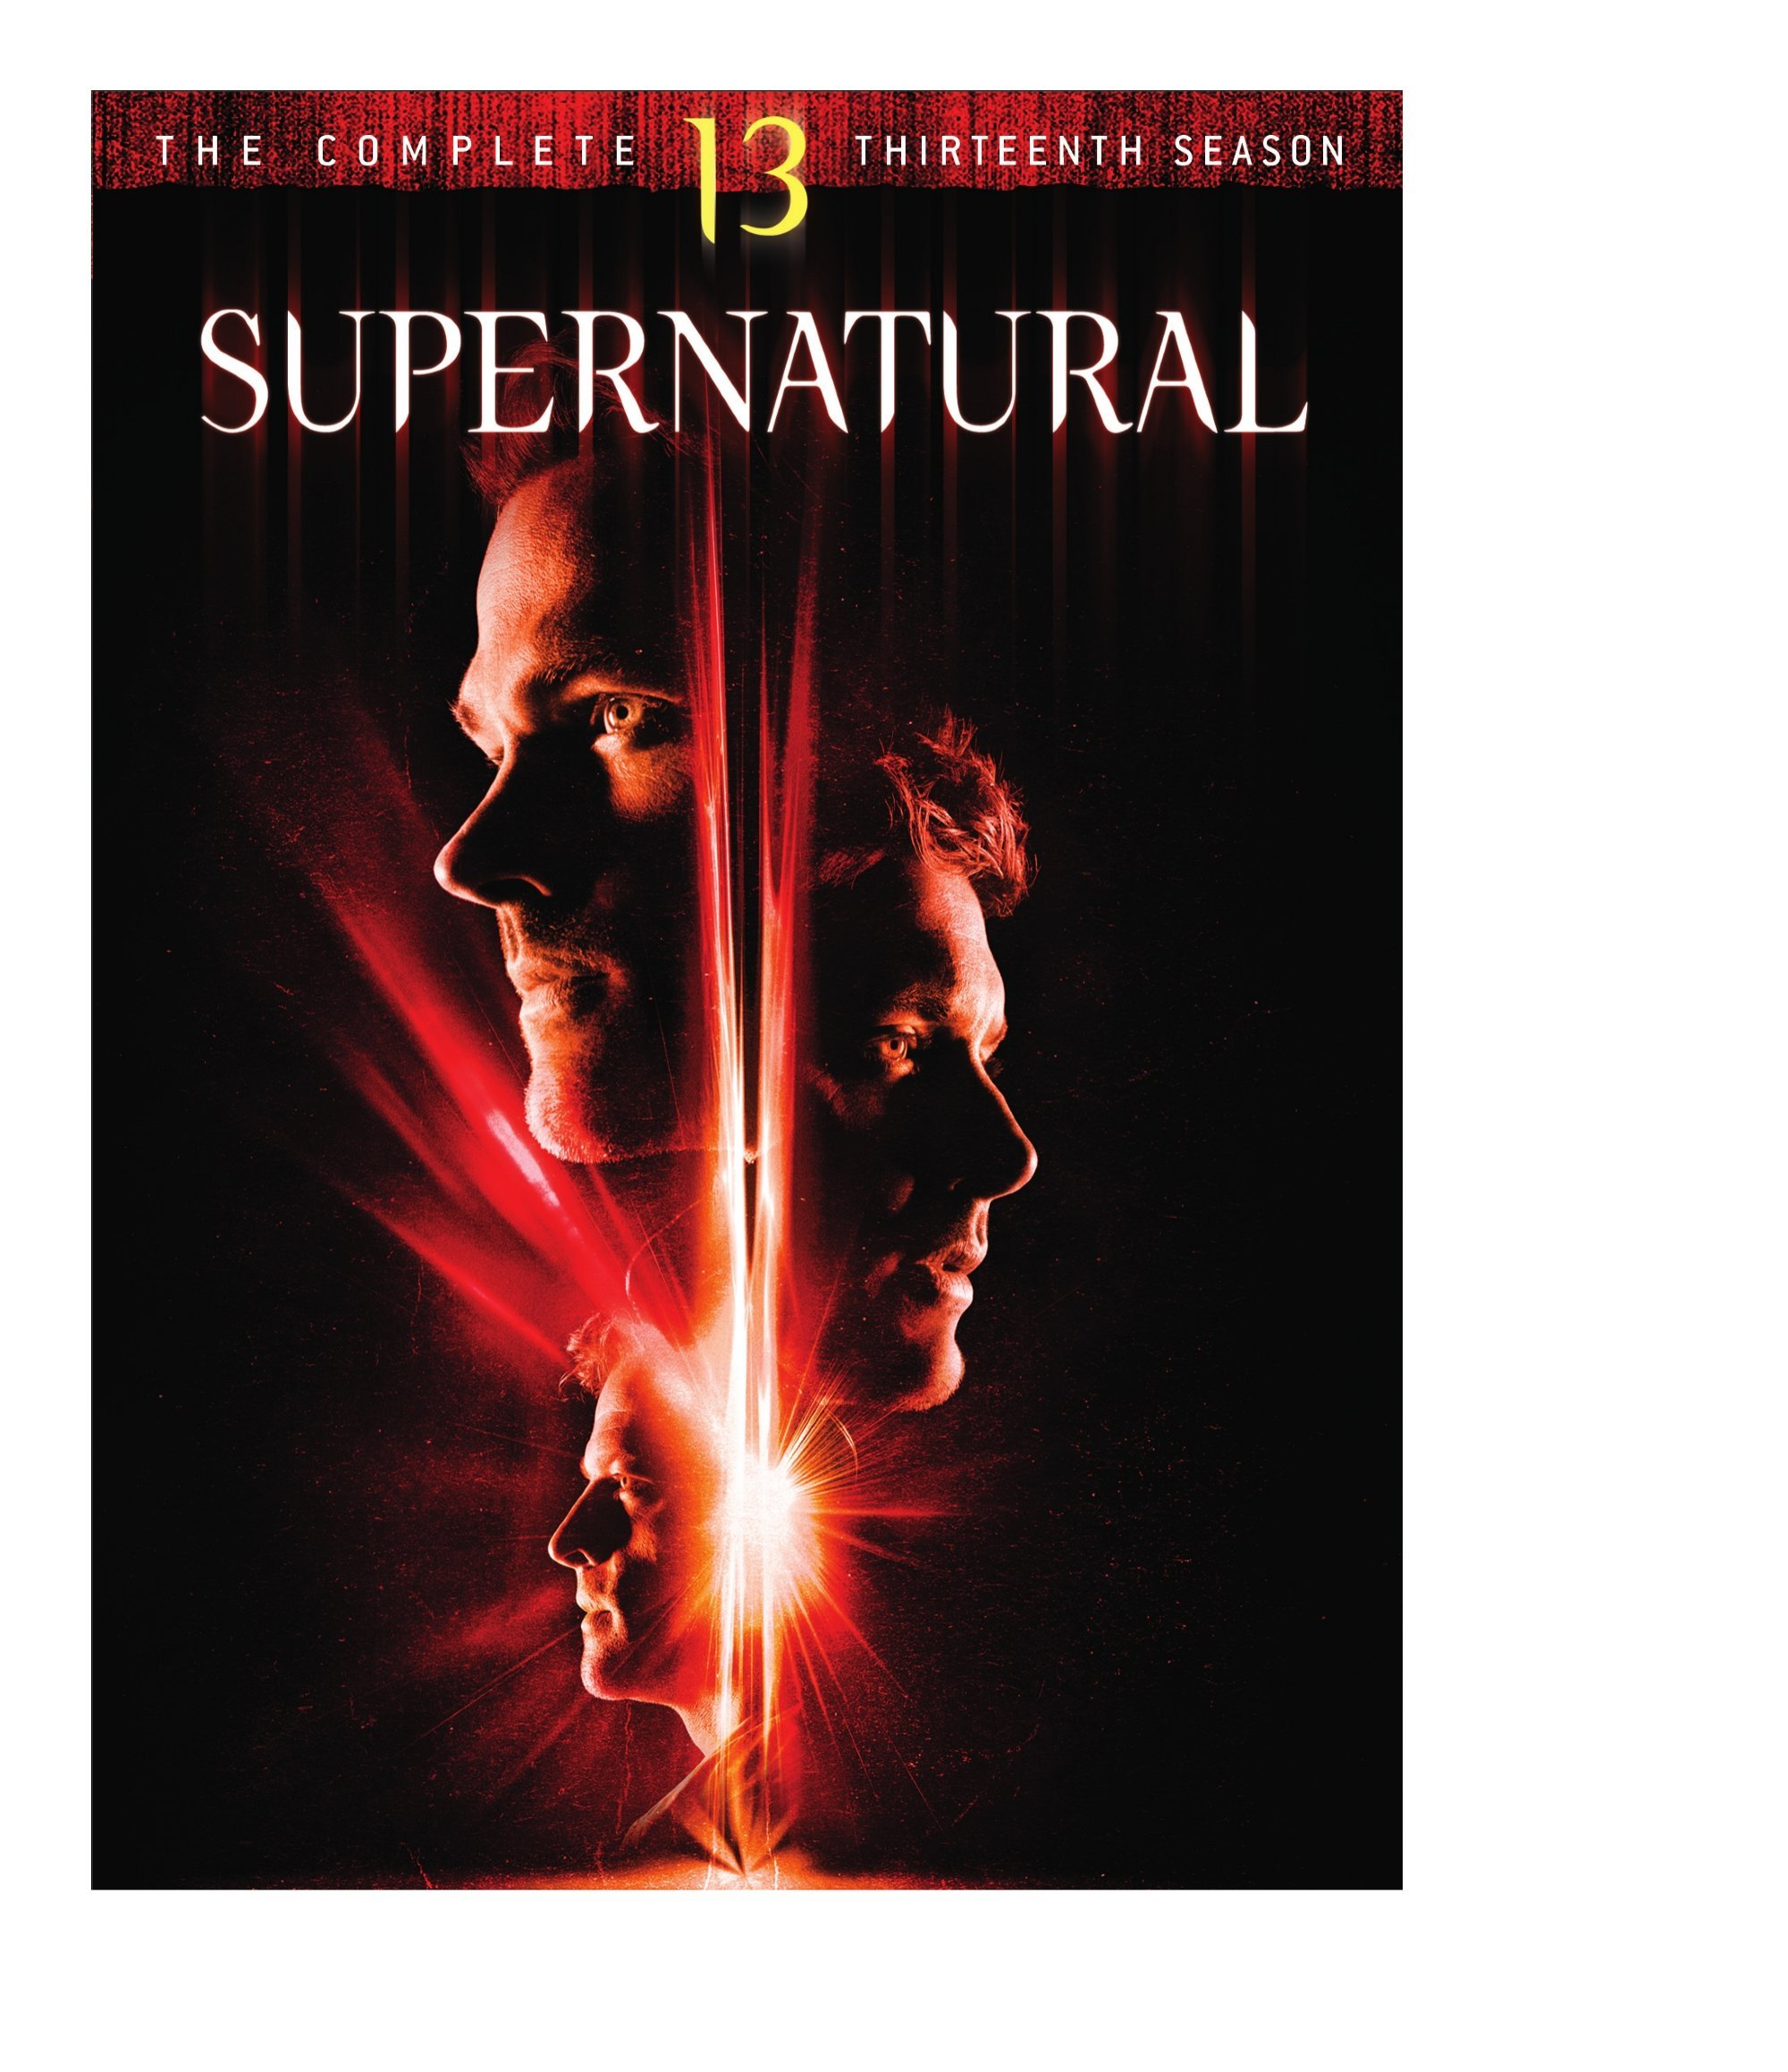 DVD : Supernatural: The Complete Thirteenth Season (Boxed Set, 5PC)